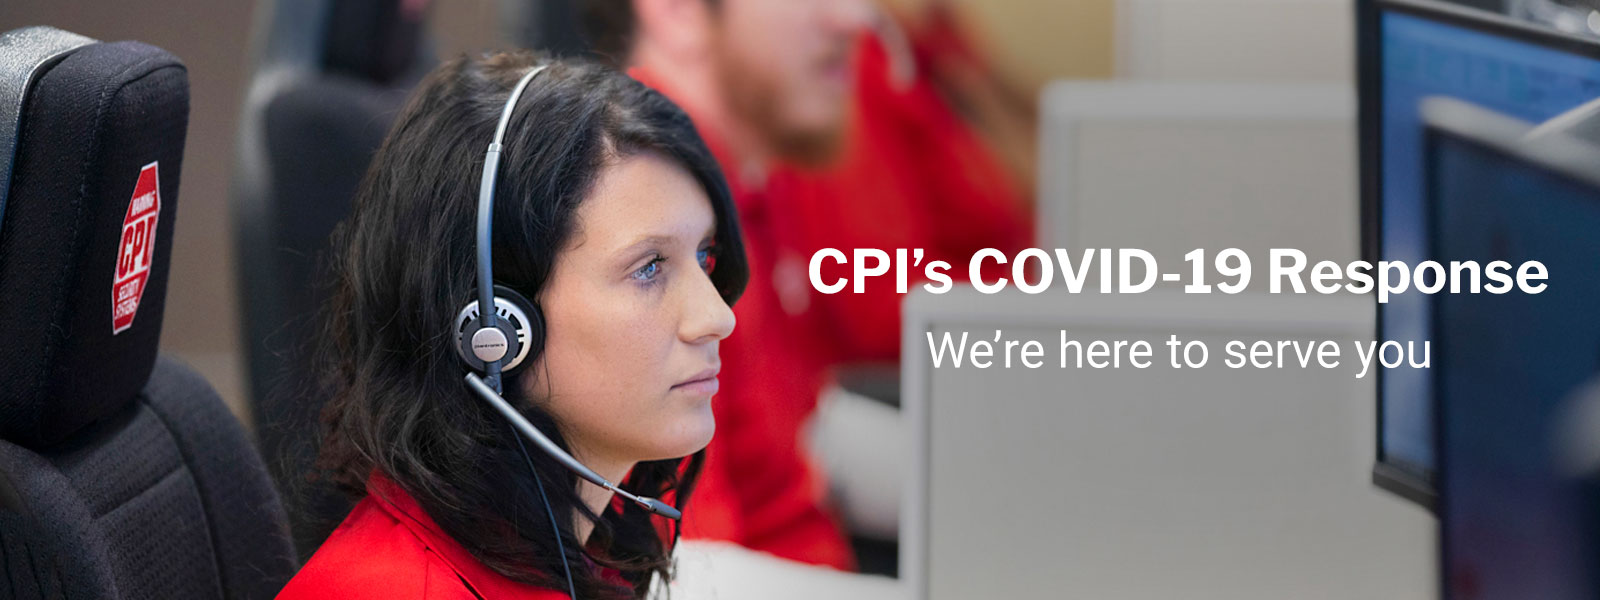 CPI Security Covid-19 Banner Image